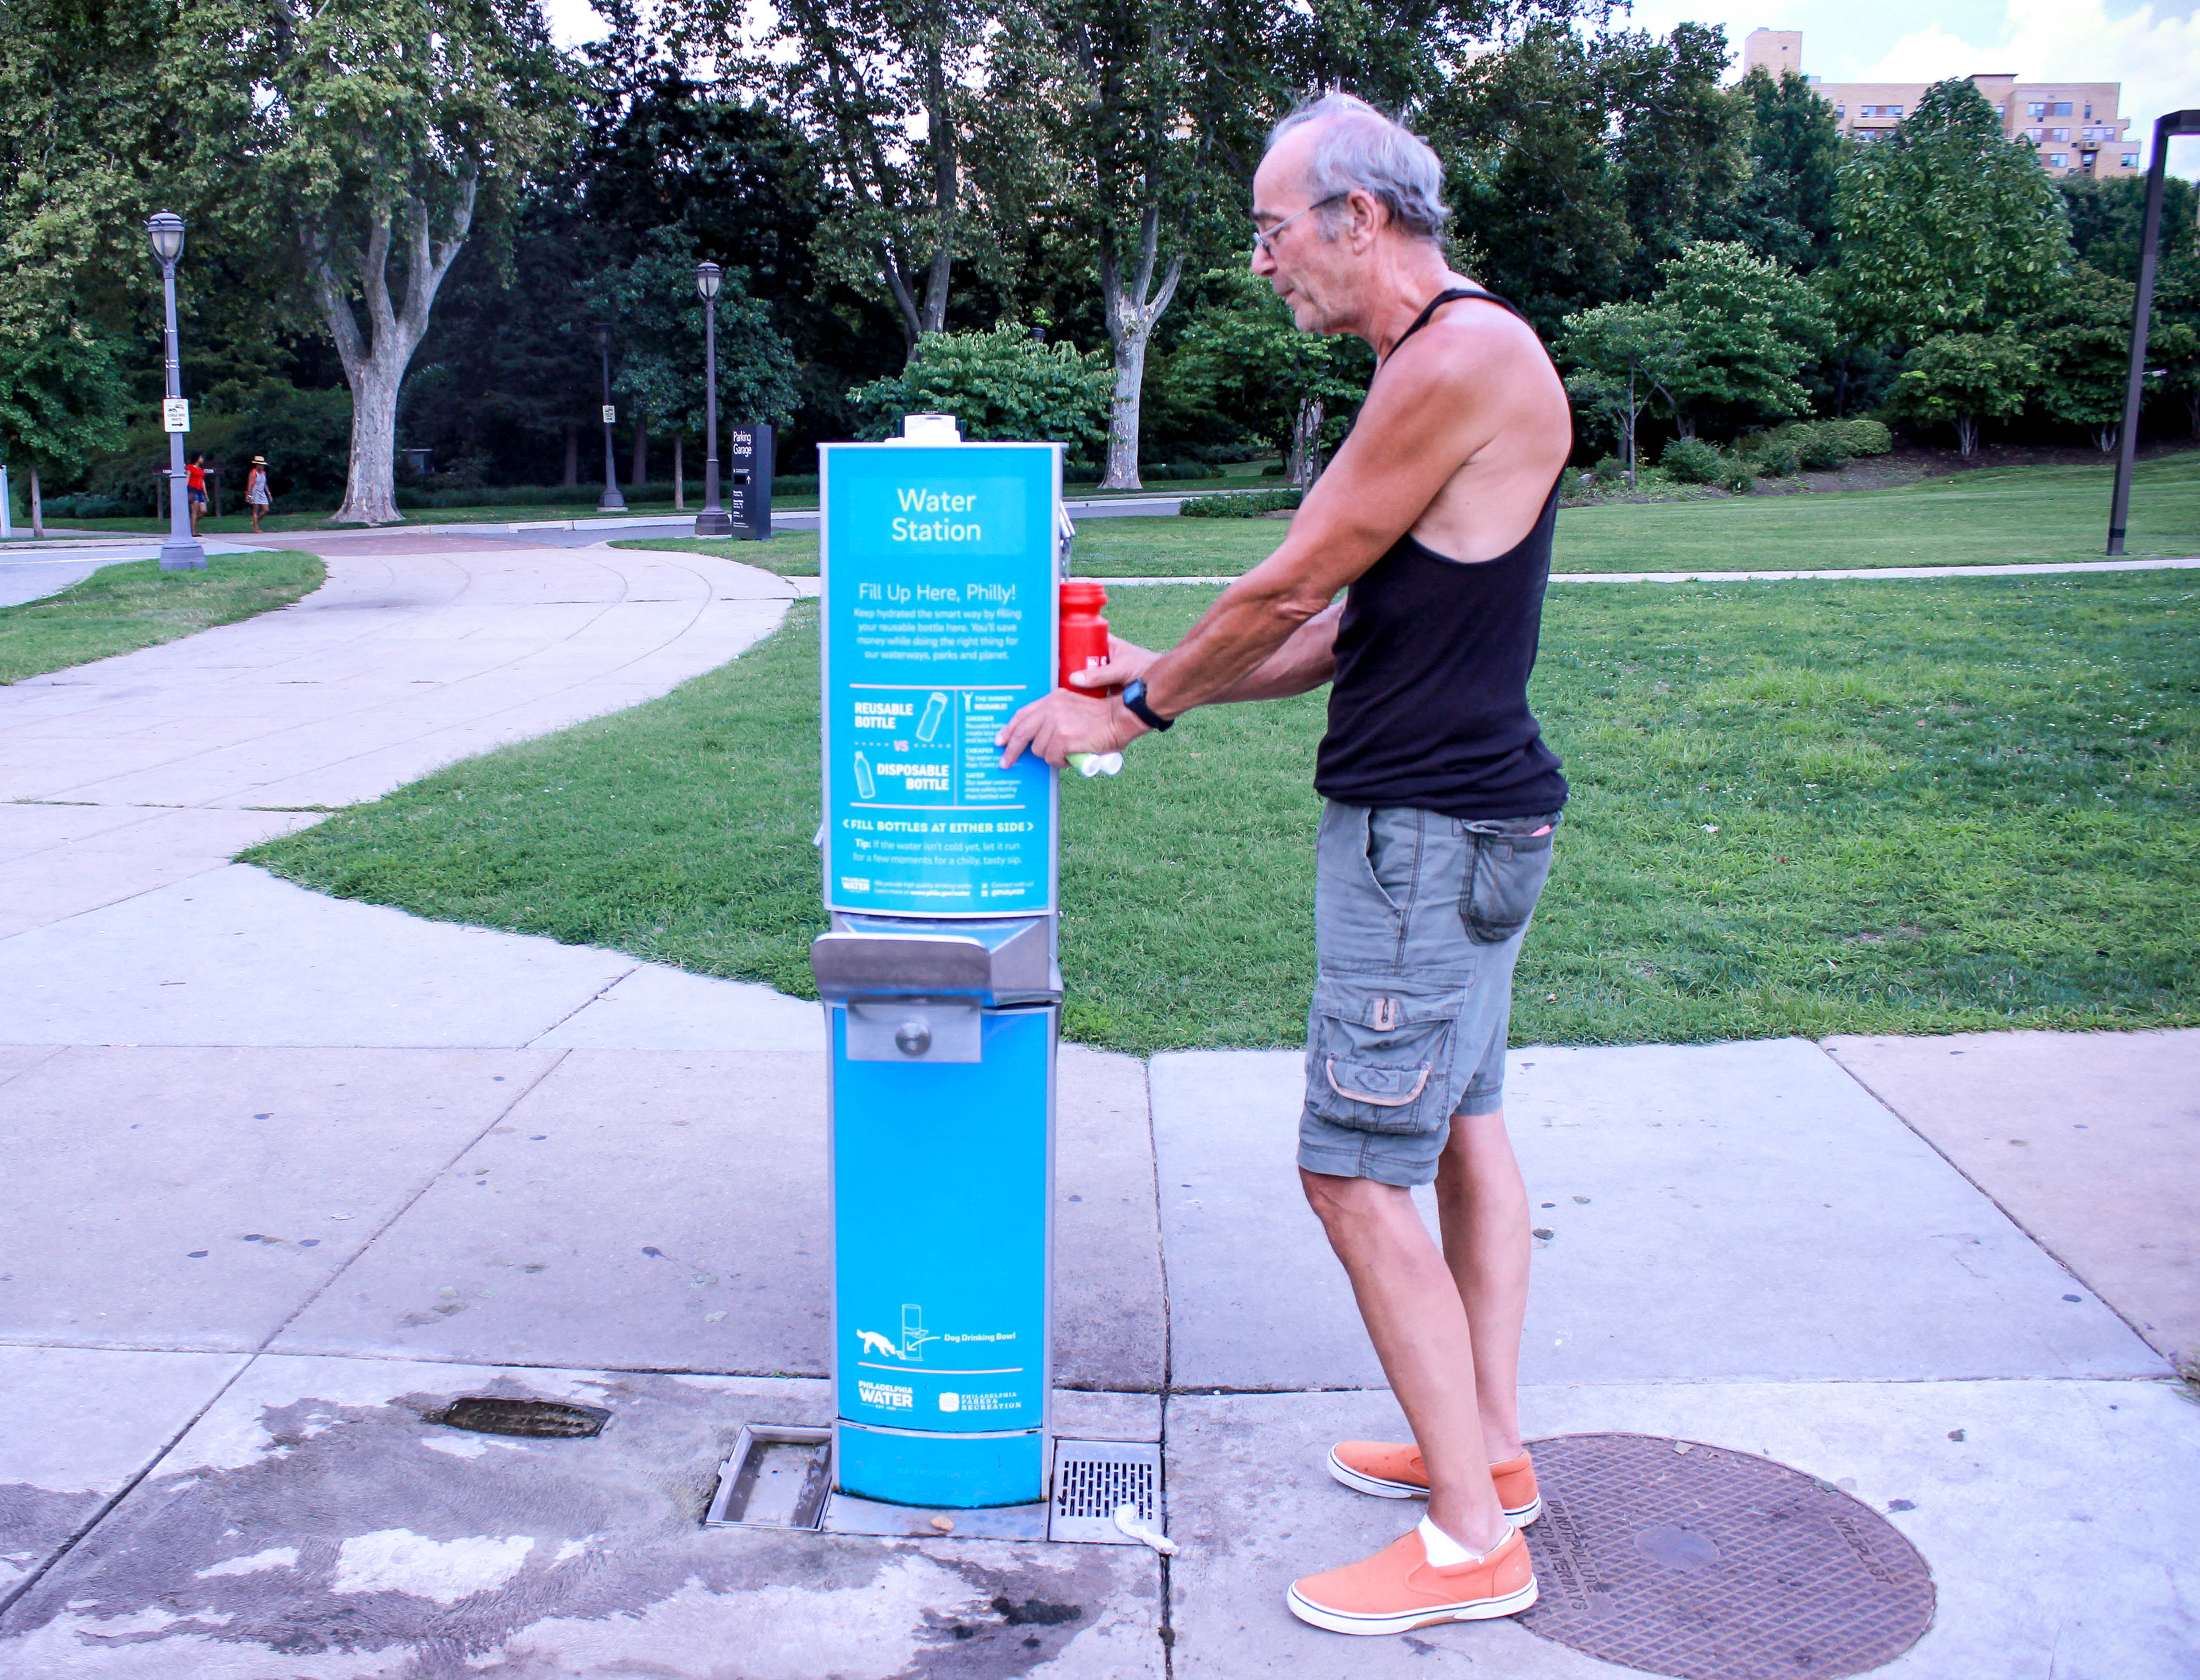 Herb Henschke refills his water bottle at a kiosk near the Fairmount Water Works. | Samantha Maldonado